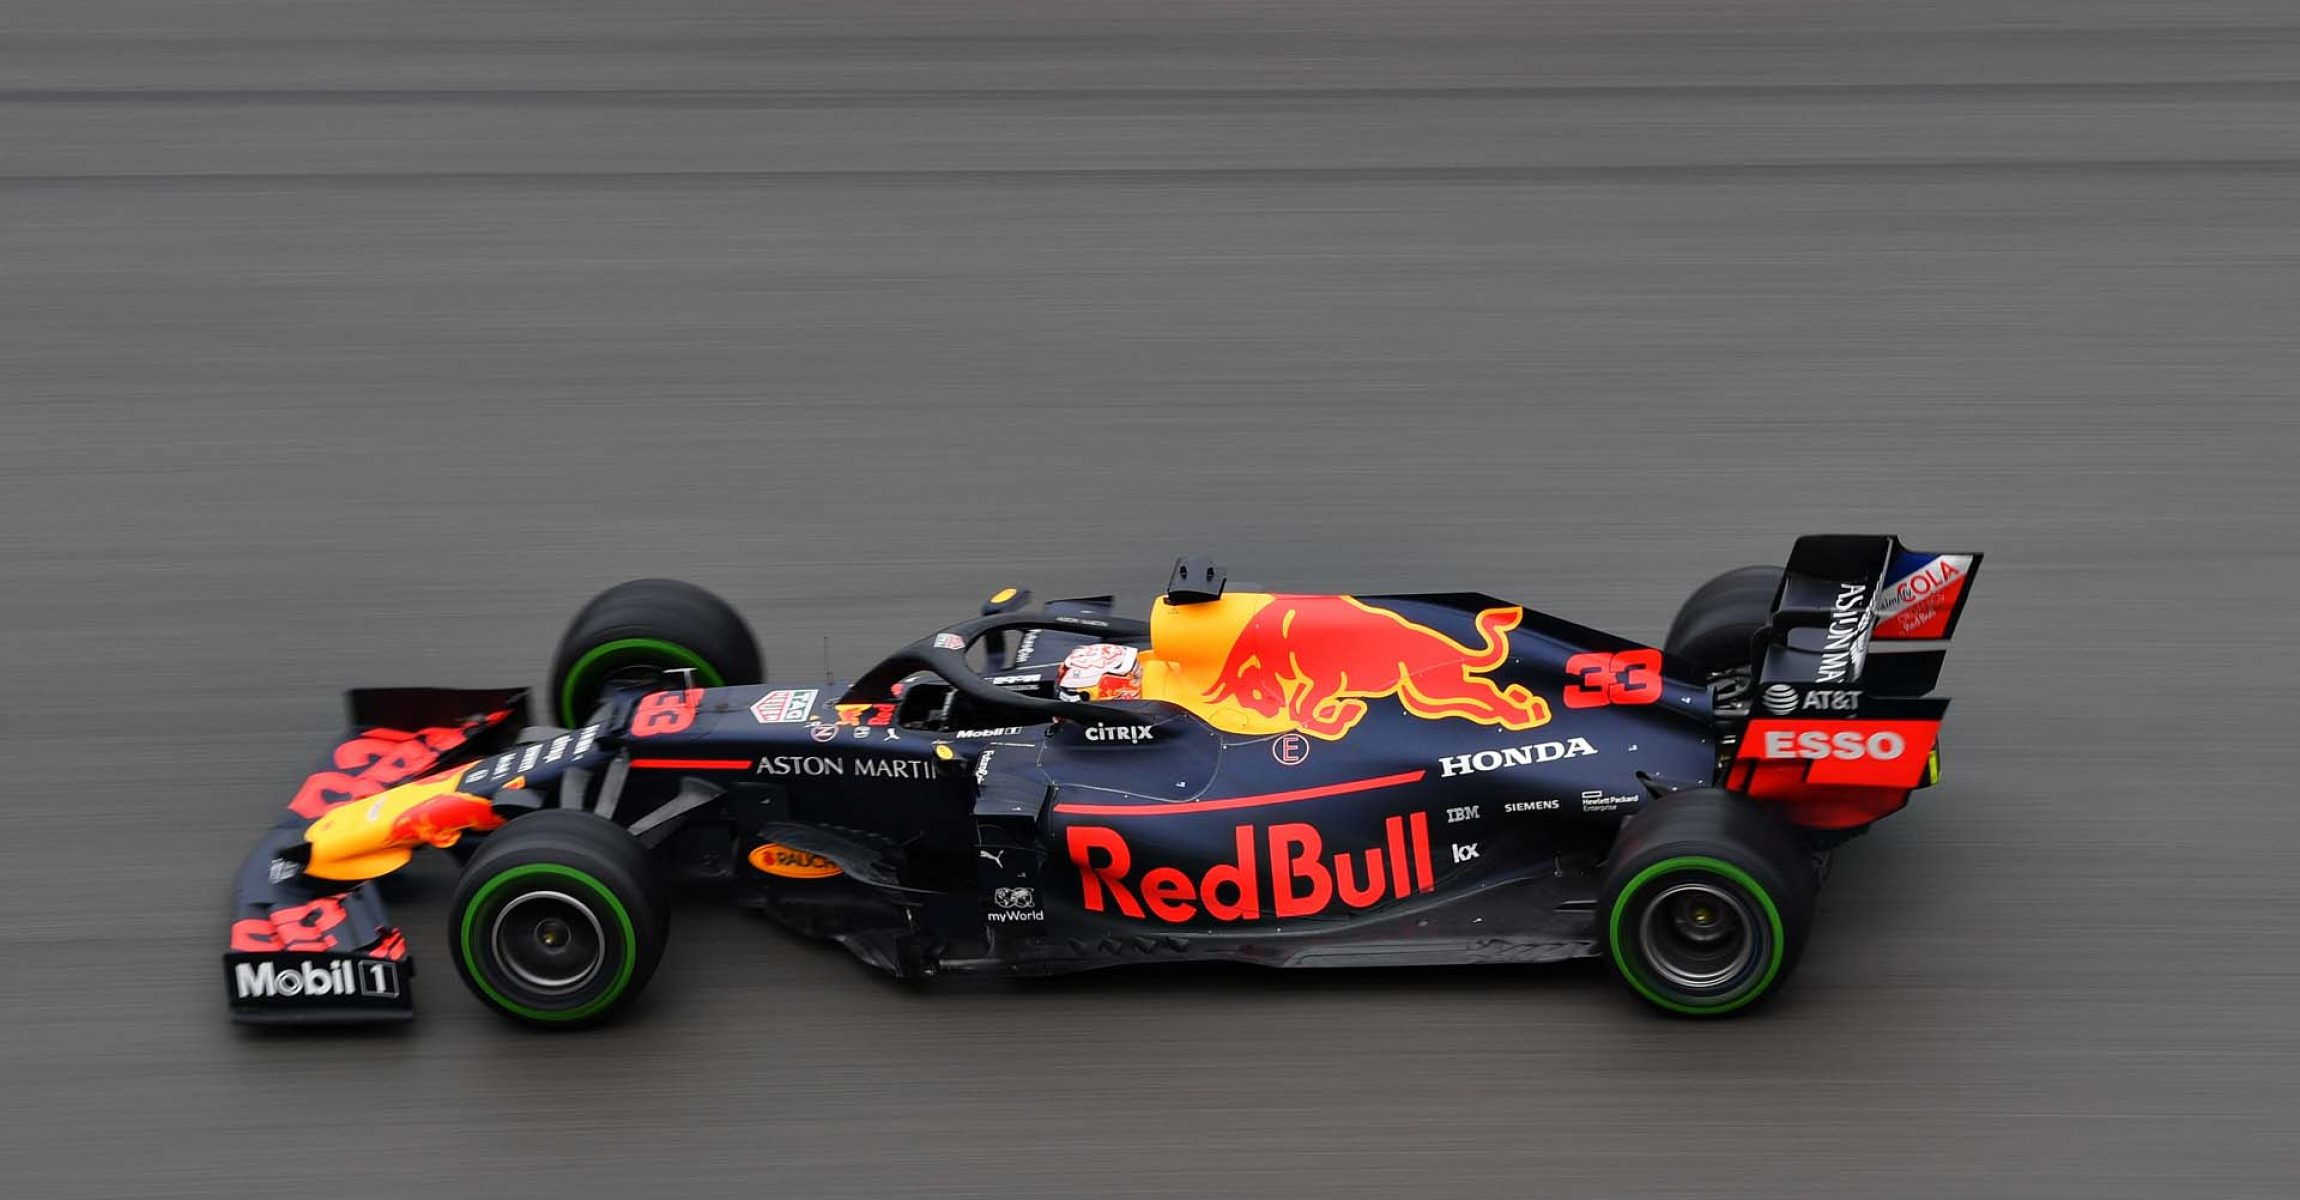 HOCKENHEIM, GERMANY - JULY 28: Max Verstappen of the Netherlands driving the (33) Aston Martin Red Bull Racing RB15 on track during the F1 Grand Prix of Germany at Hockenheimring on July 28, 2019 in Hockenheim, Germany. (Photo by Dan Mullan/Getty Images) // Getty Images / Red Bull Content Pool  // AP-2139Z92ED2511 // Usage for editorial use only // Please go to www.redbullcontentpool.com for further information. //